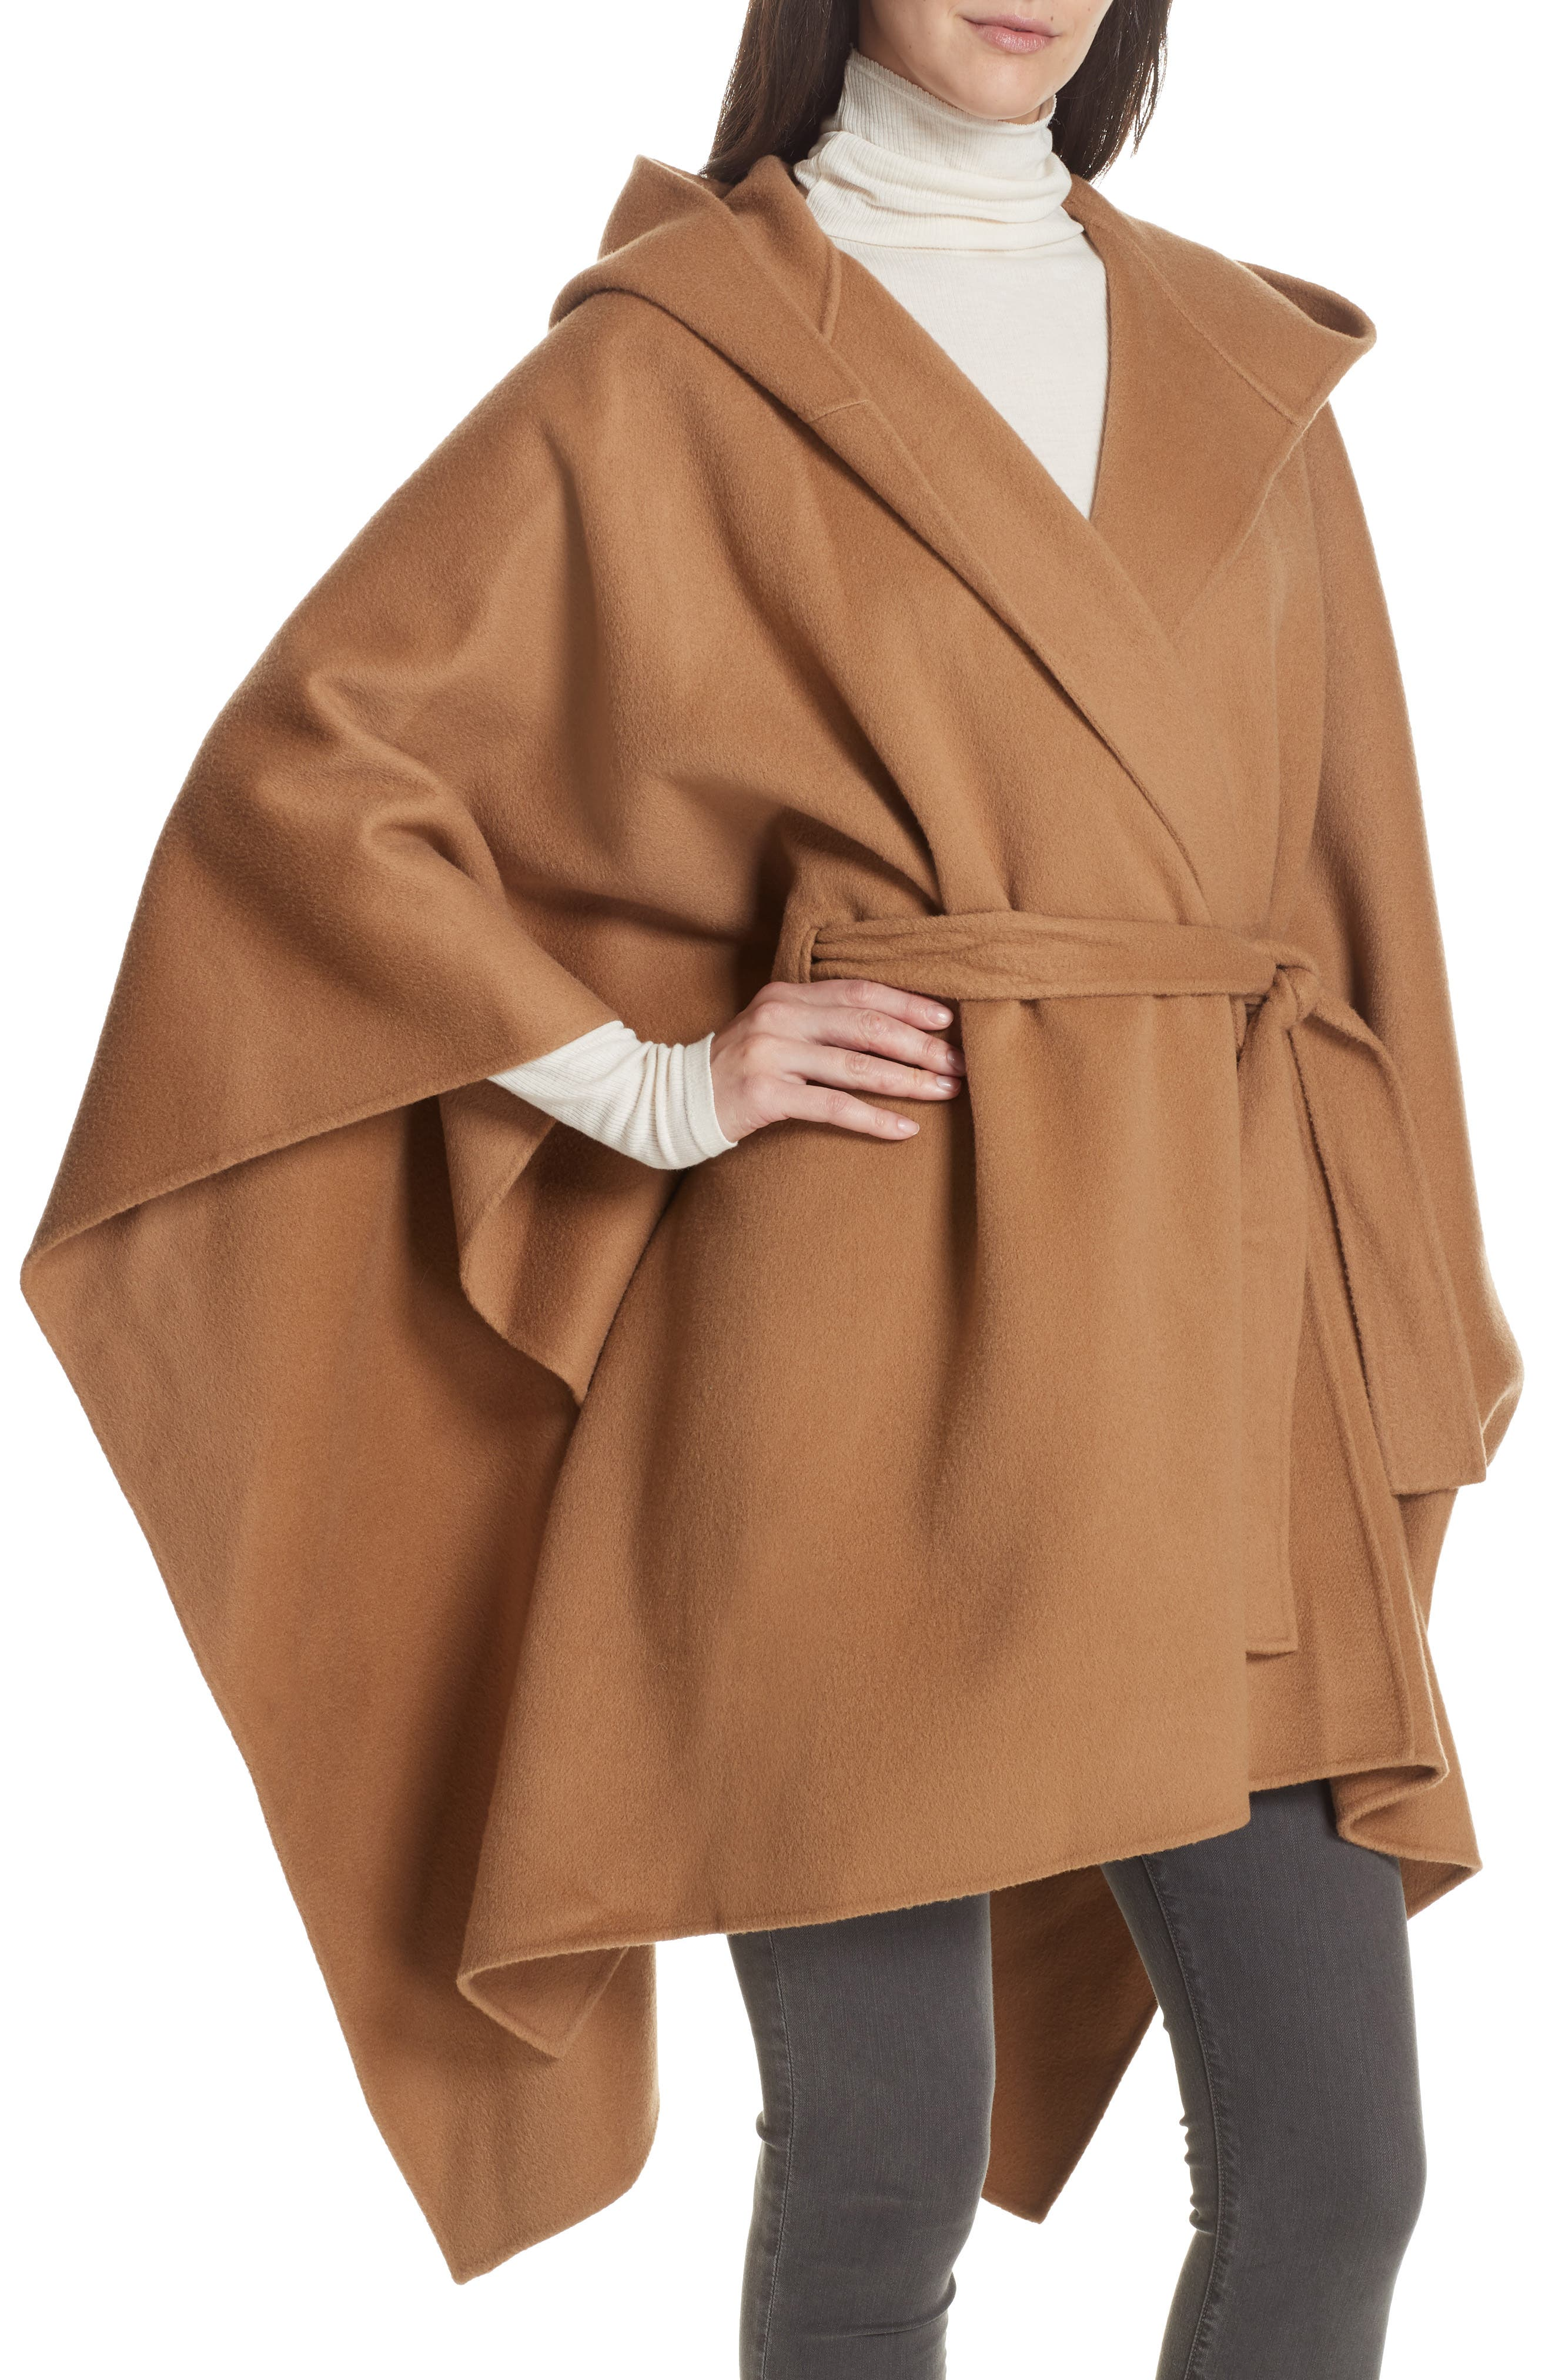 New Divide Hooded Poncho Coat,                             Alternate thumbnail 4, color,                             200